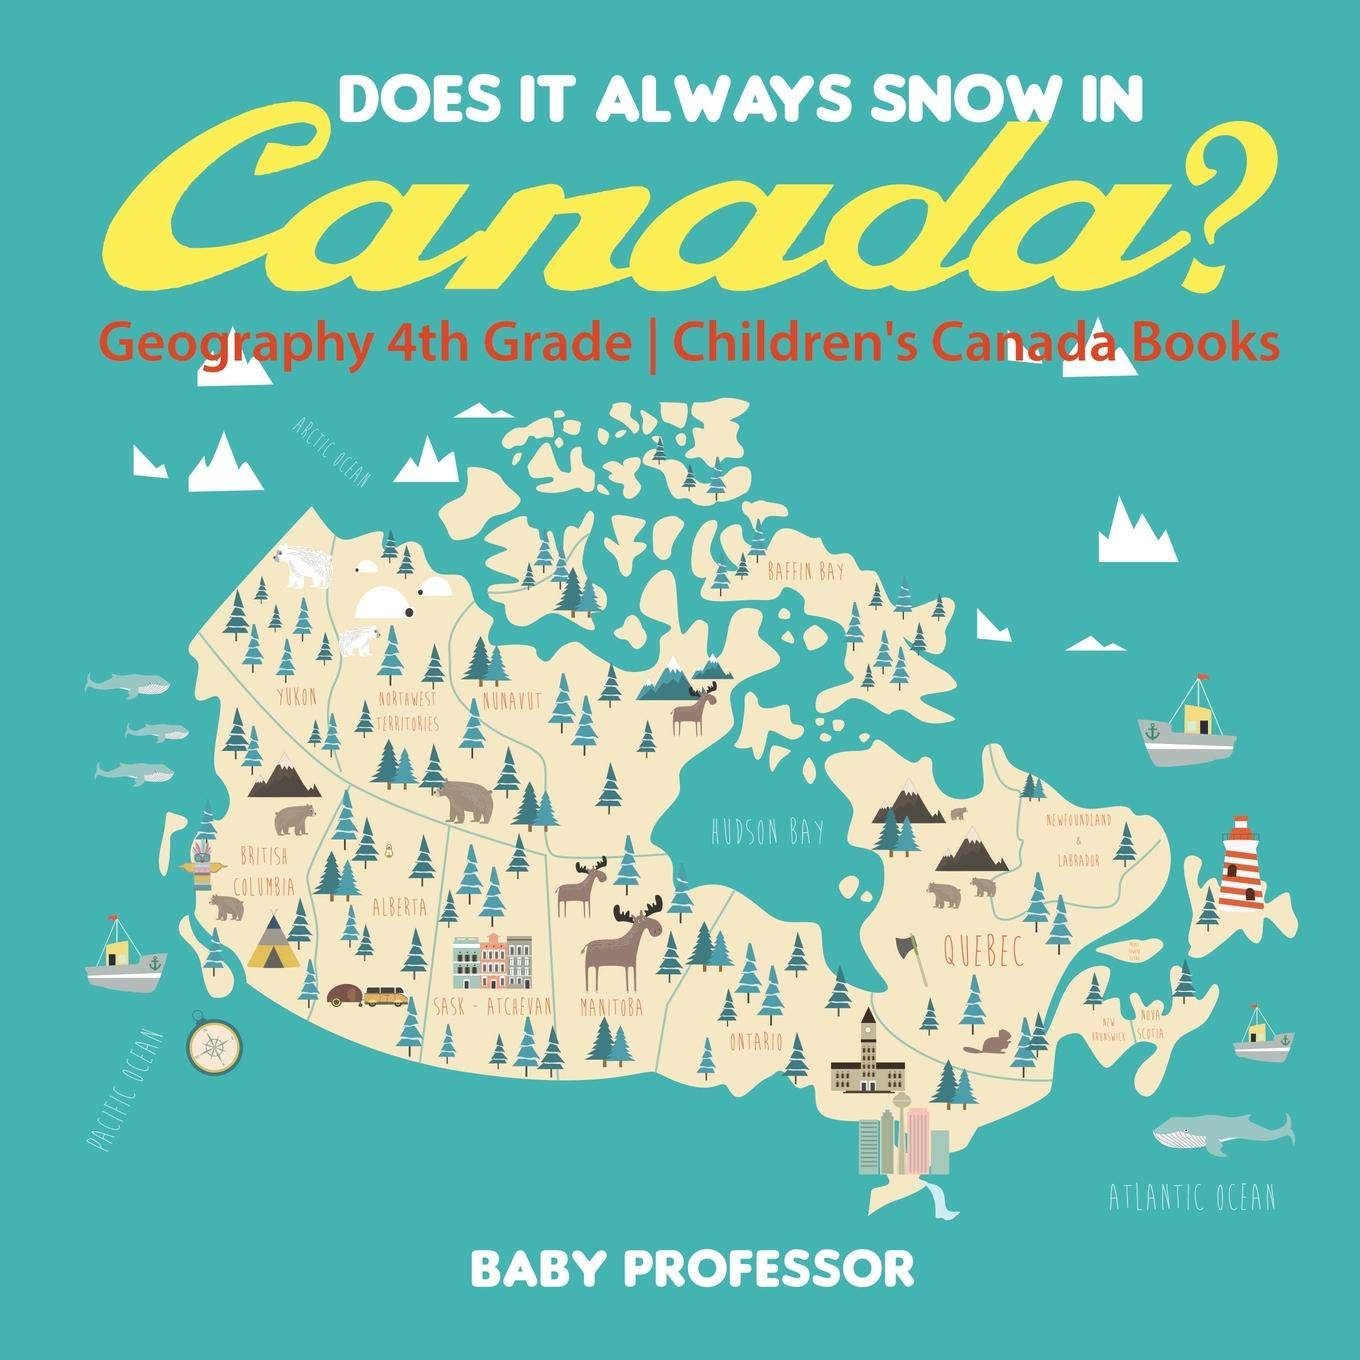 Does It Always Snow In Canada  Geography 4th Grade   Children's Canada Books